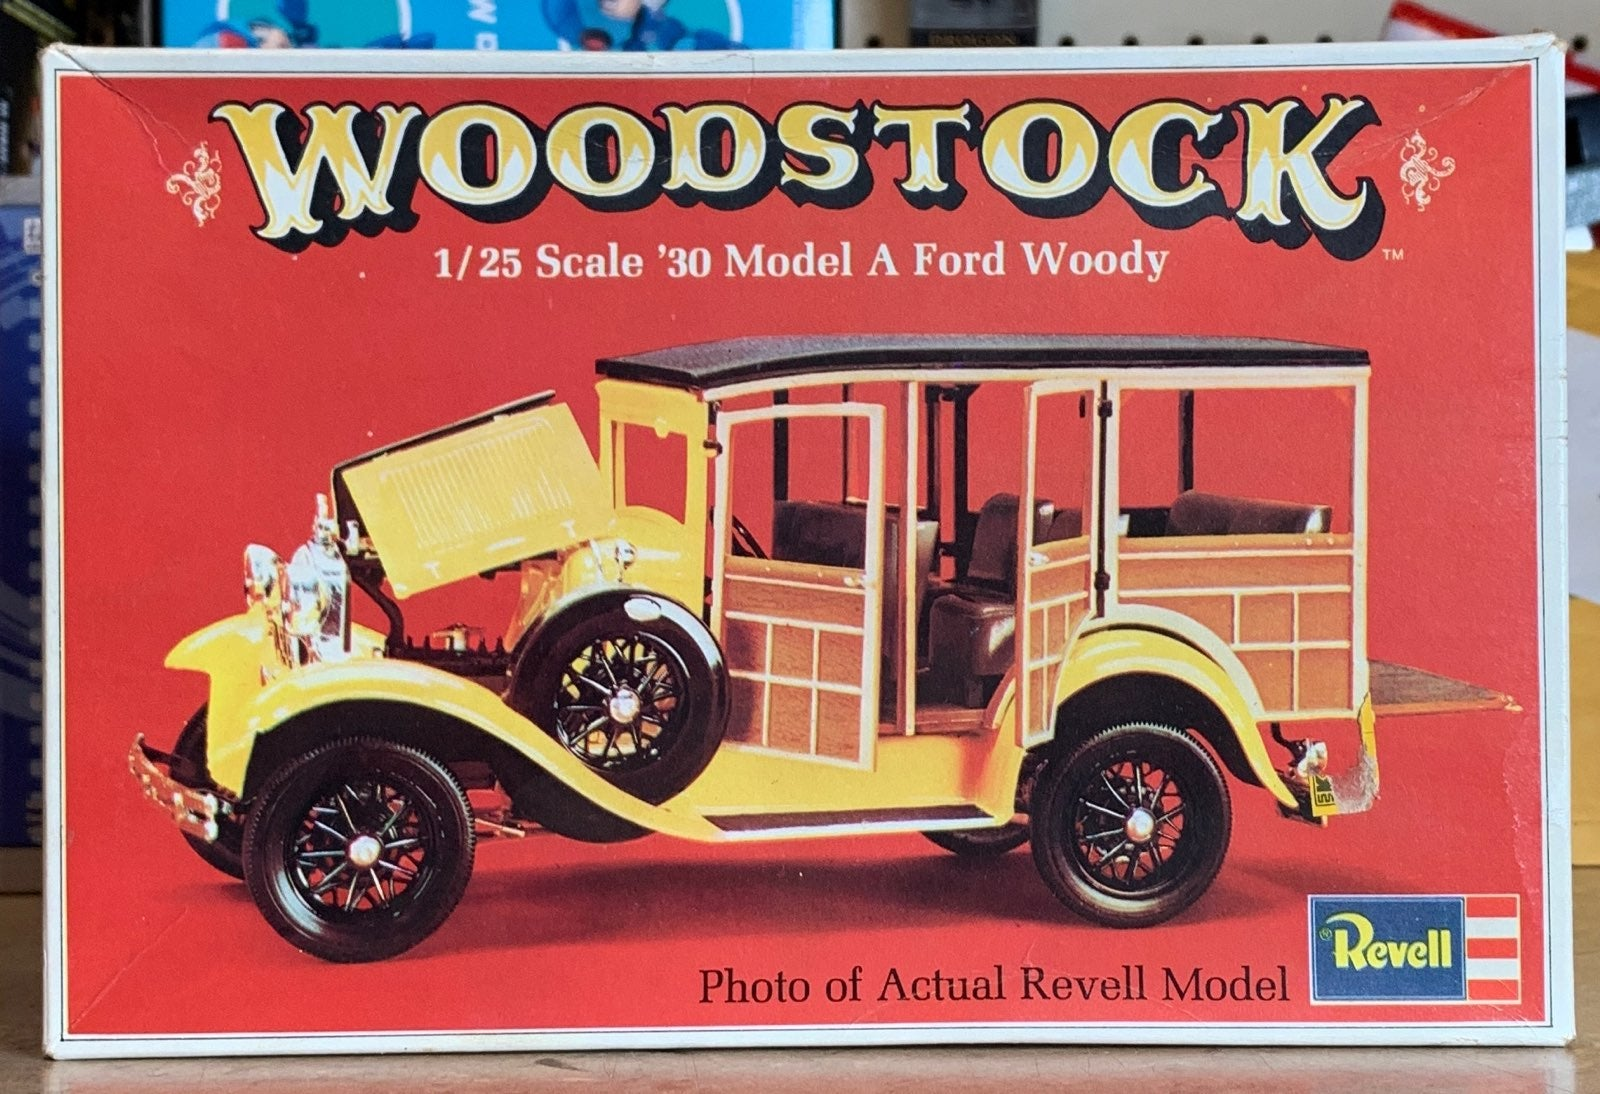 Revell 1/25 Scale '30 Model A Ford Woody